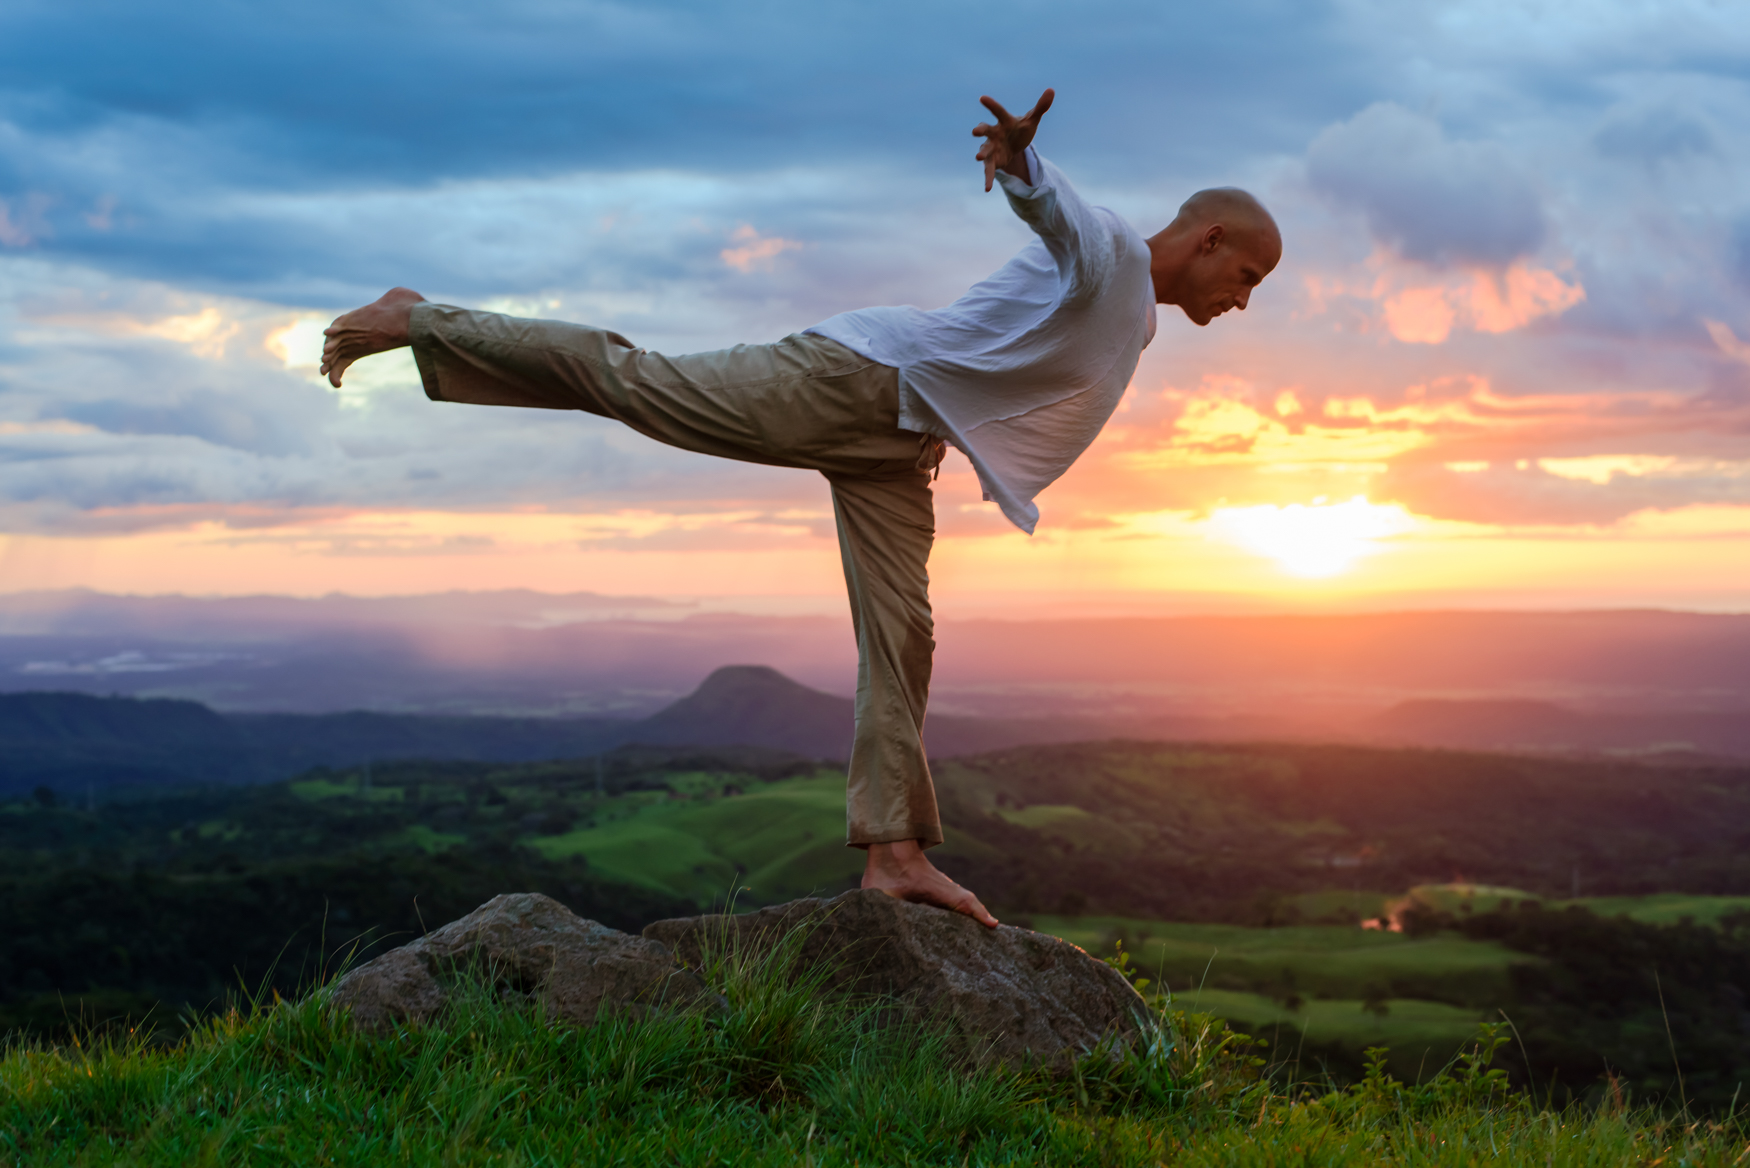 Yoga-Inspired-Practices-Photography-Costa-Rica-7.jpg